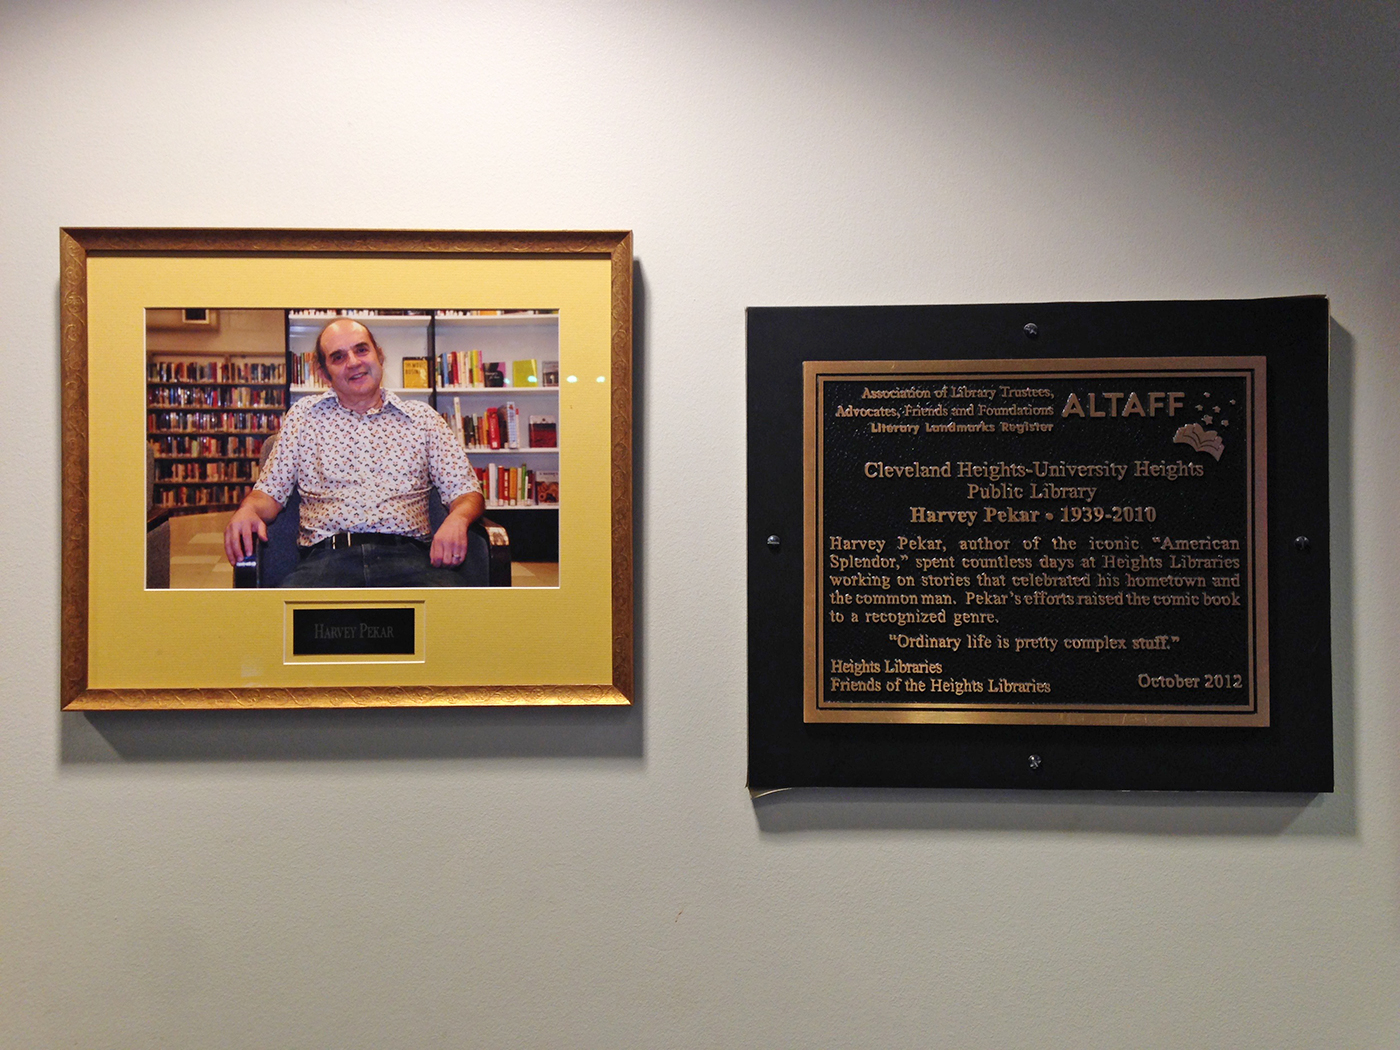 A plaque dedicated to Harvey at the Cleveland Heights-University Heights Public Library